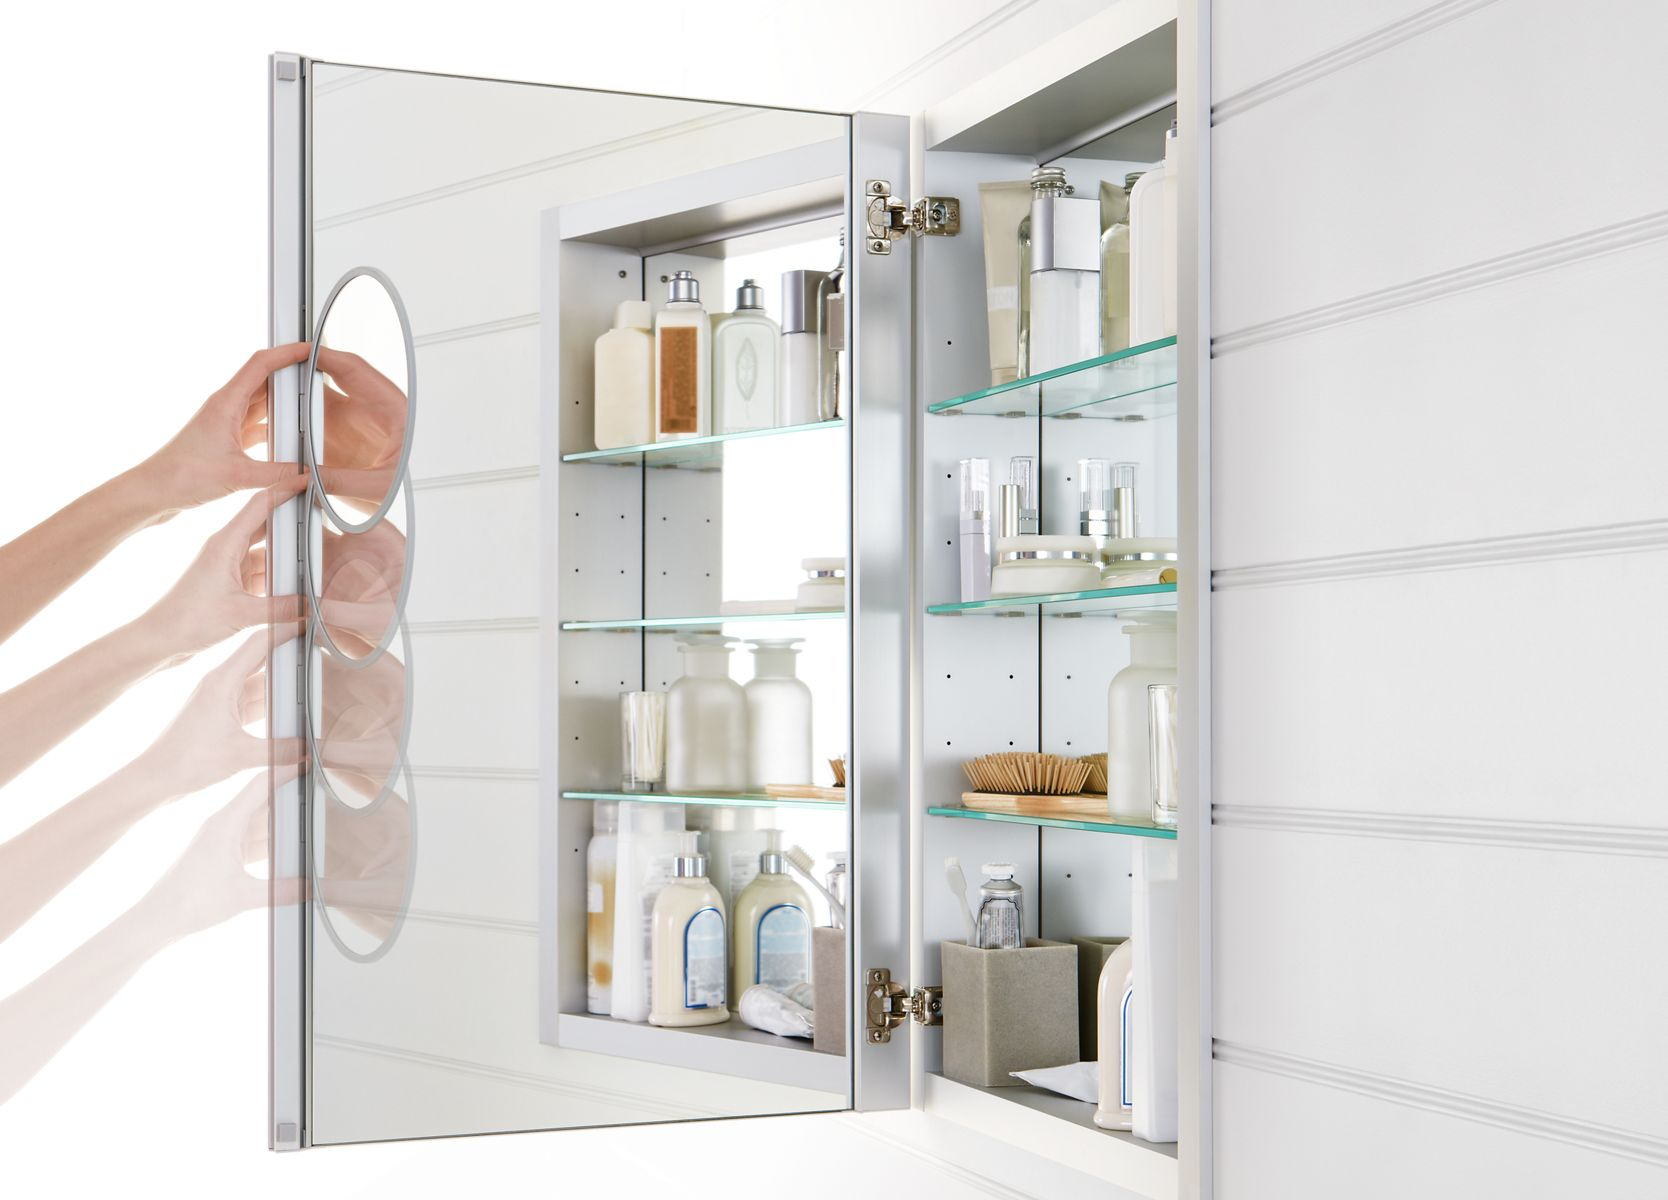 Mirror medicine cabinet 100 mirror medicine cabinets recessed medicine cabinet mirr 100 - High end medicine cabinets with mirrors ...